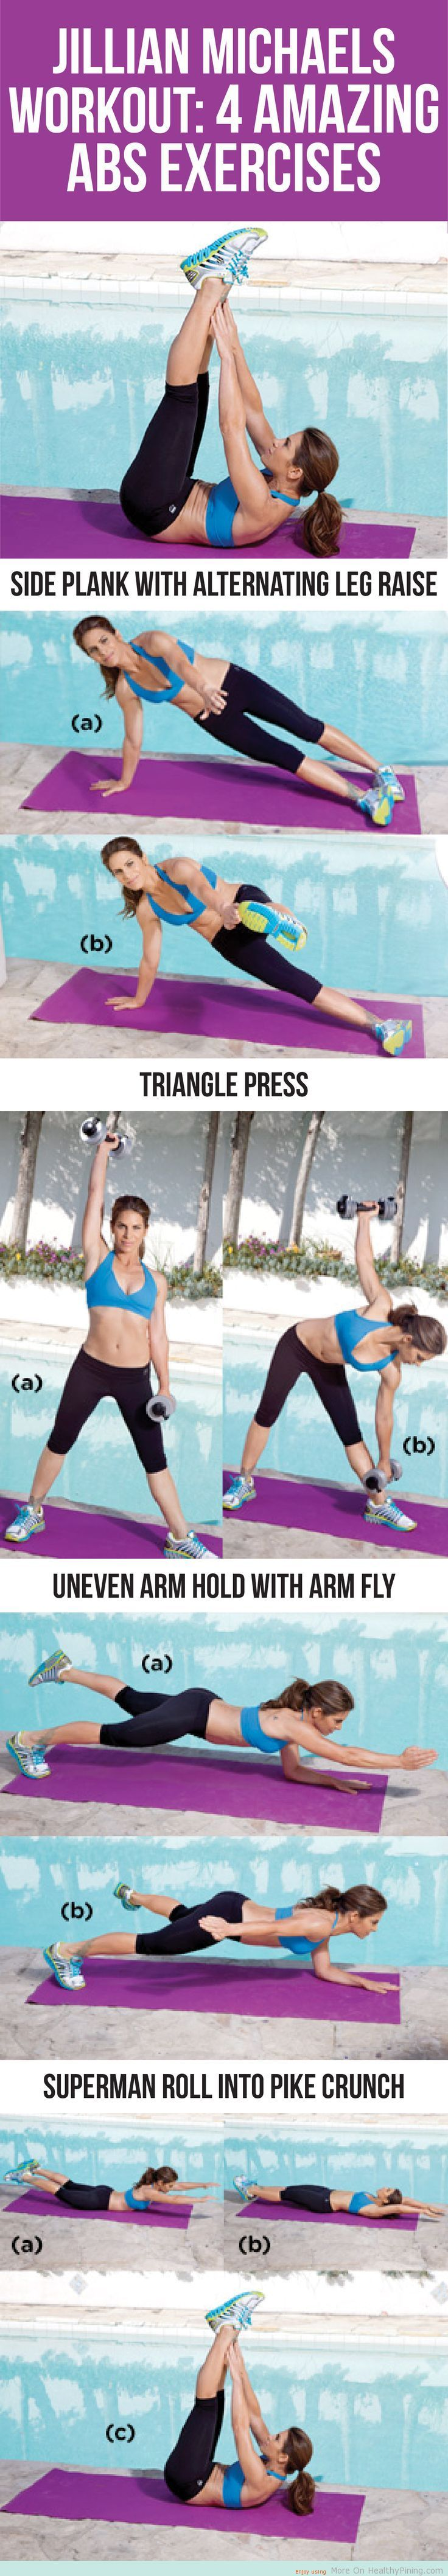 4 Amazing Abs Exercises - This tough workout will give you sculpted abs and killer confidence